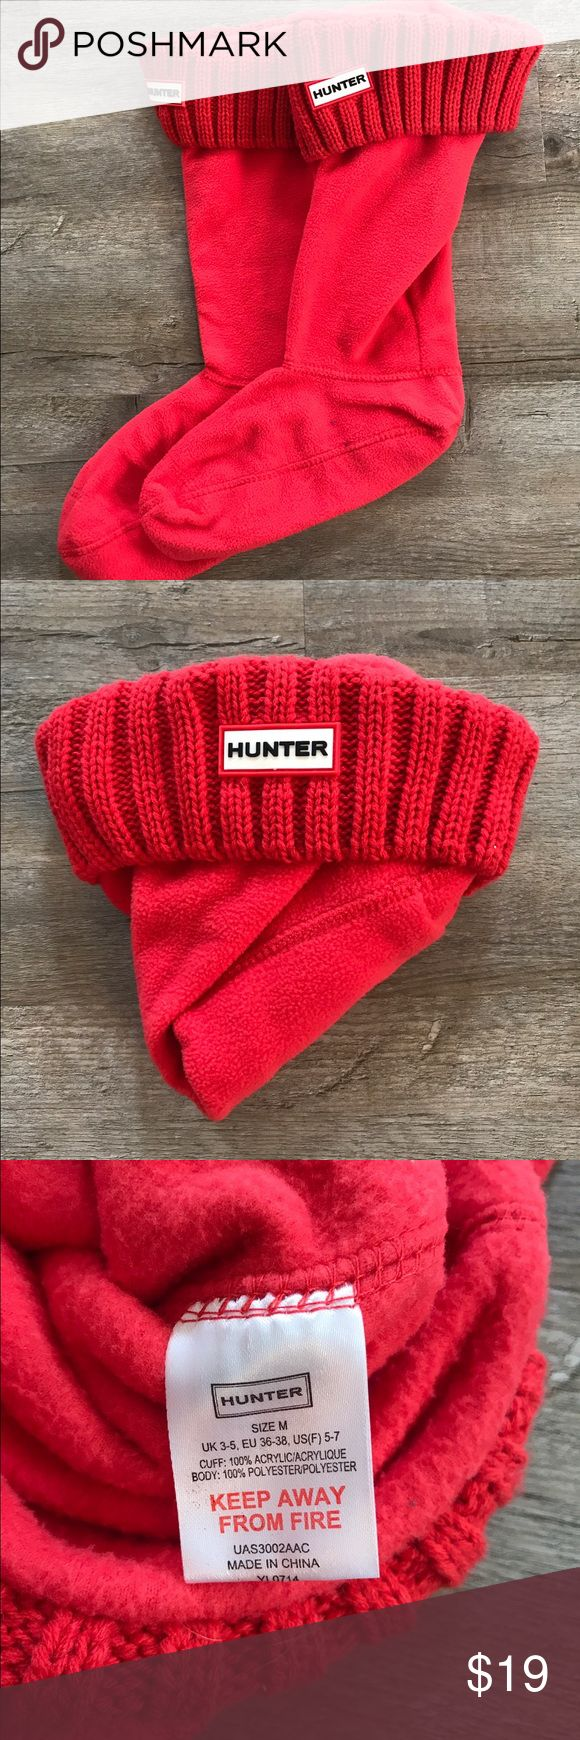 Hunter Wellie Socks Medium Hunter Wellie Socks size medium. The pictures show the true color of the socks. Please meme know if you have any questions. Hunter Boots Accessories Hosiery & Socks